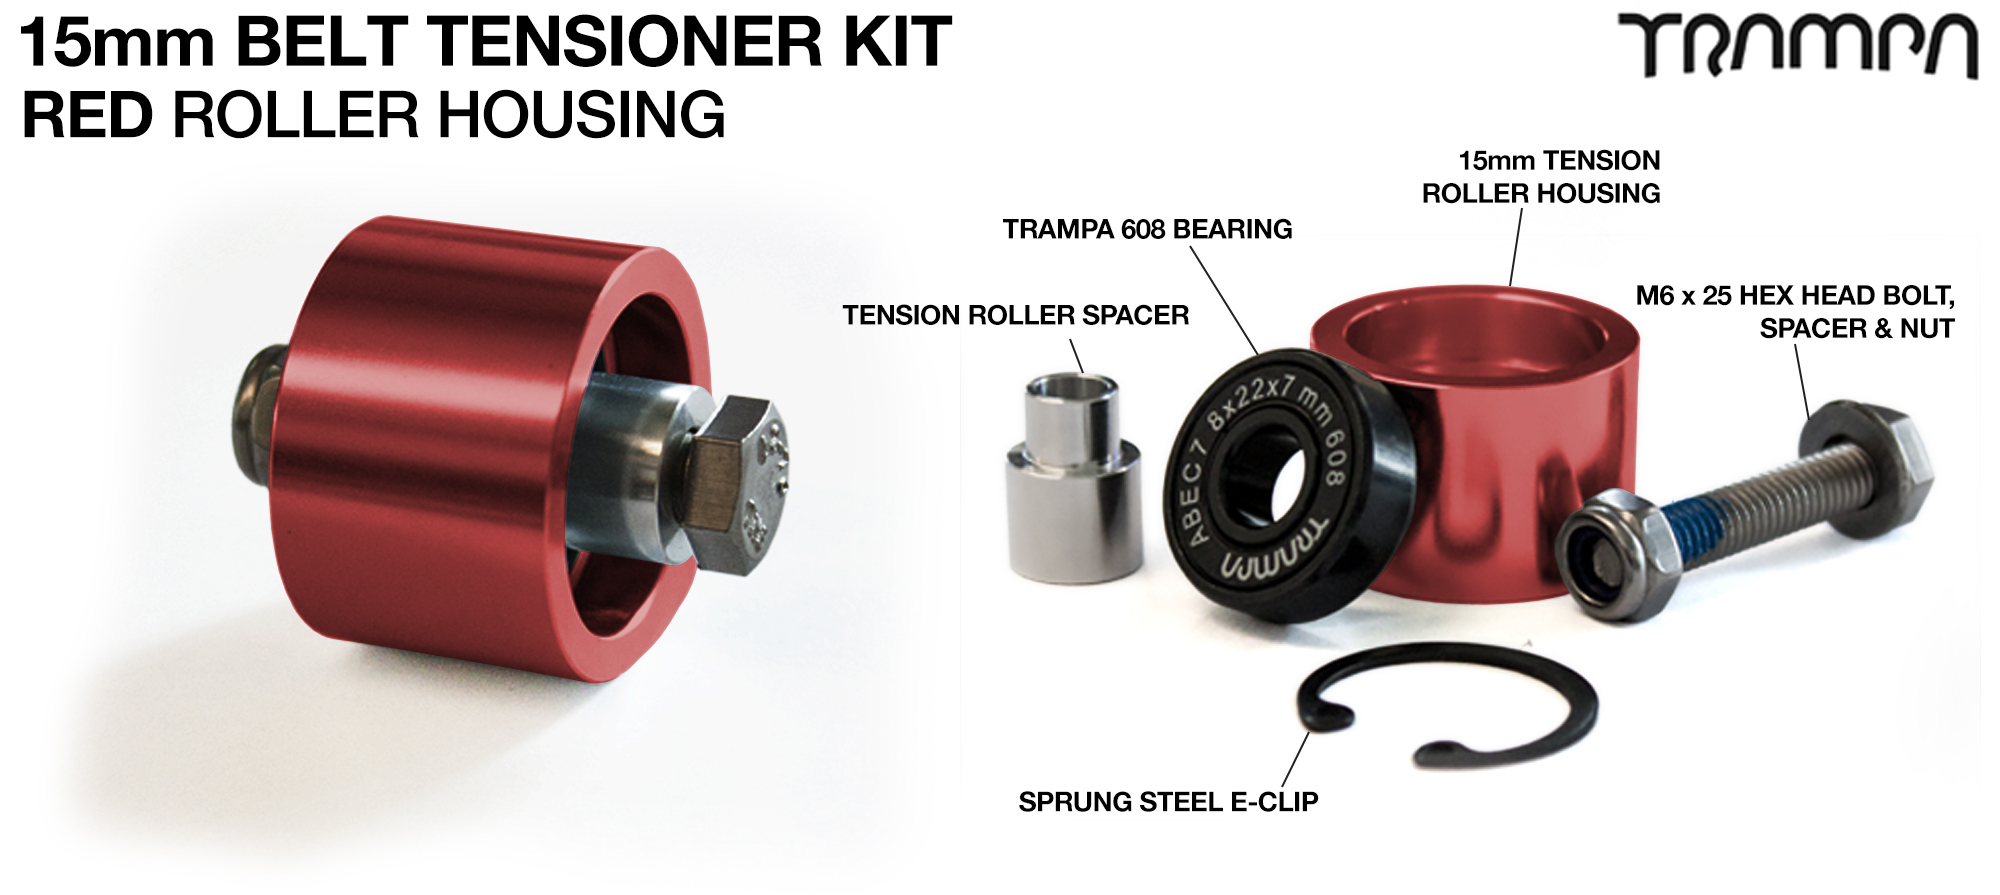 15mm Belt Tensioner - RED